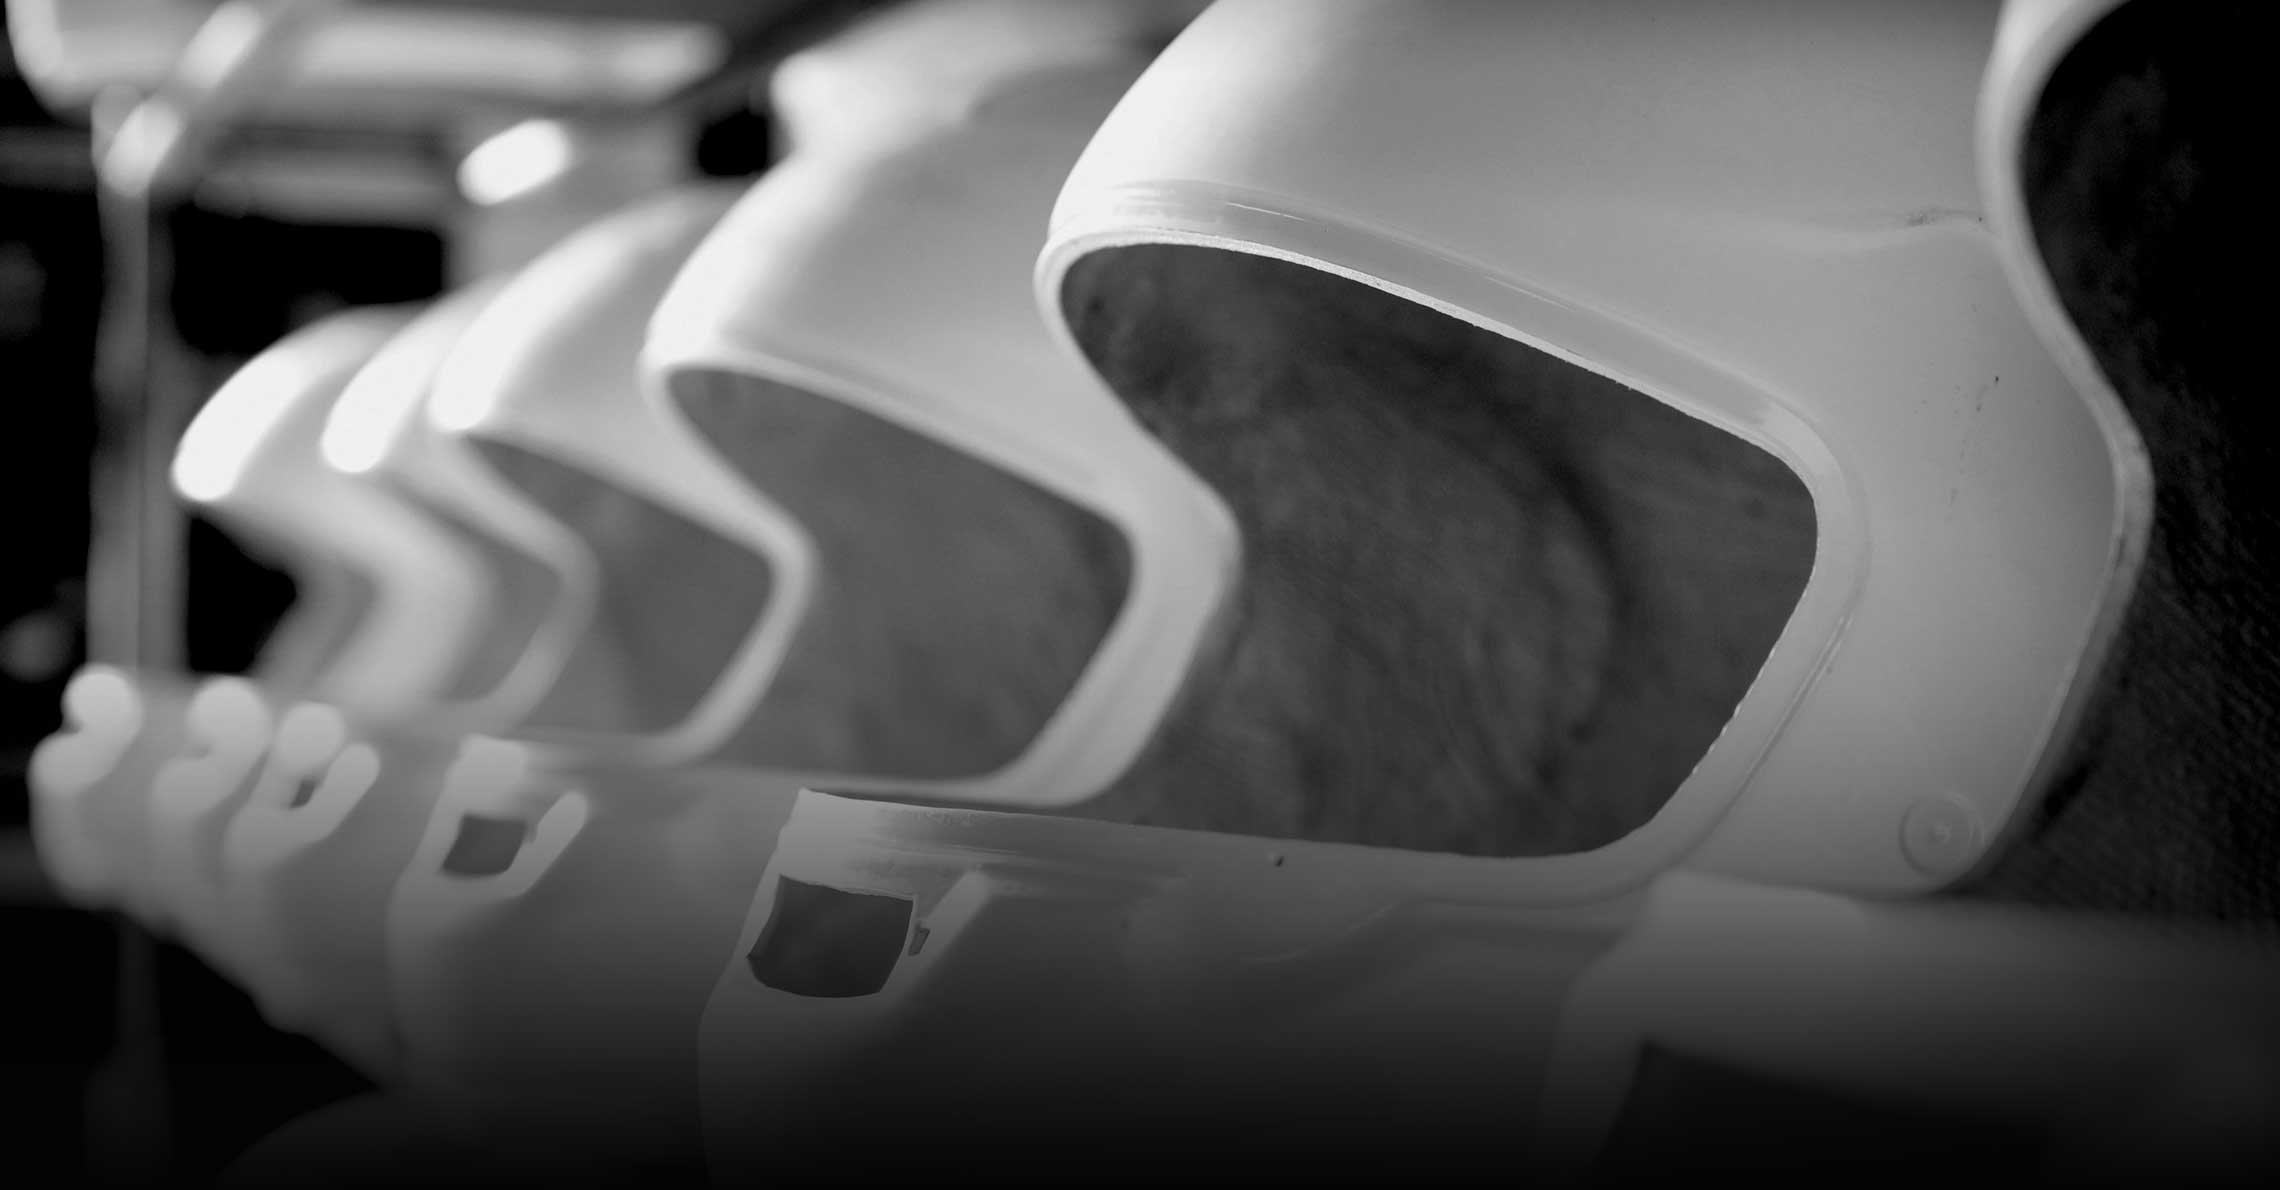 Arai Motorcycle helmets, our philosophy